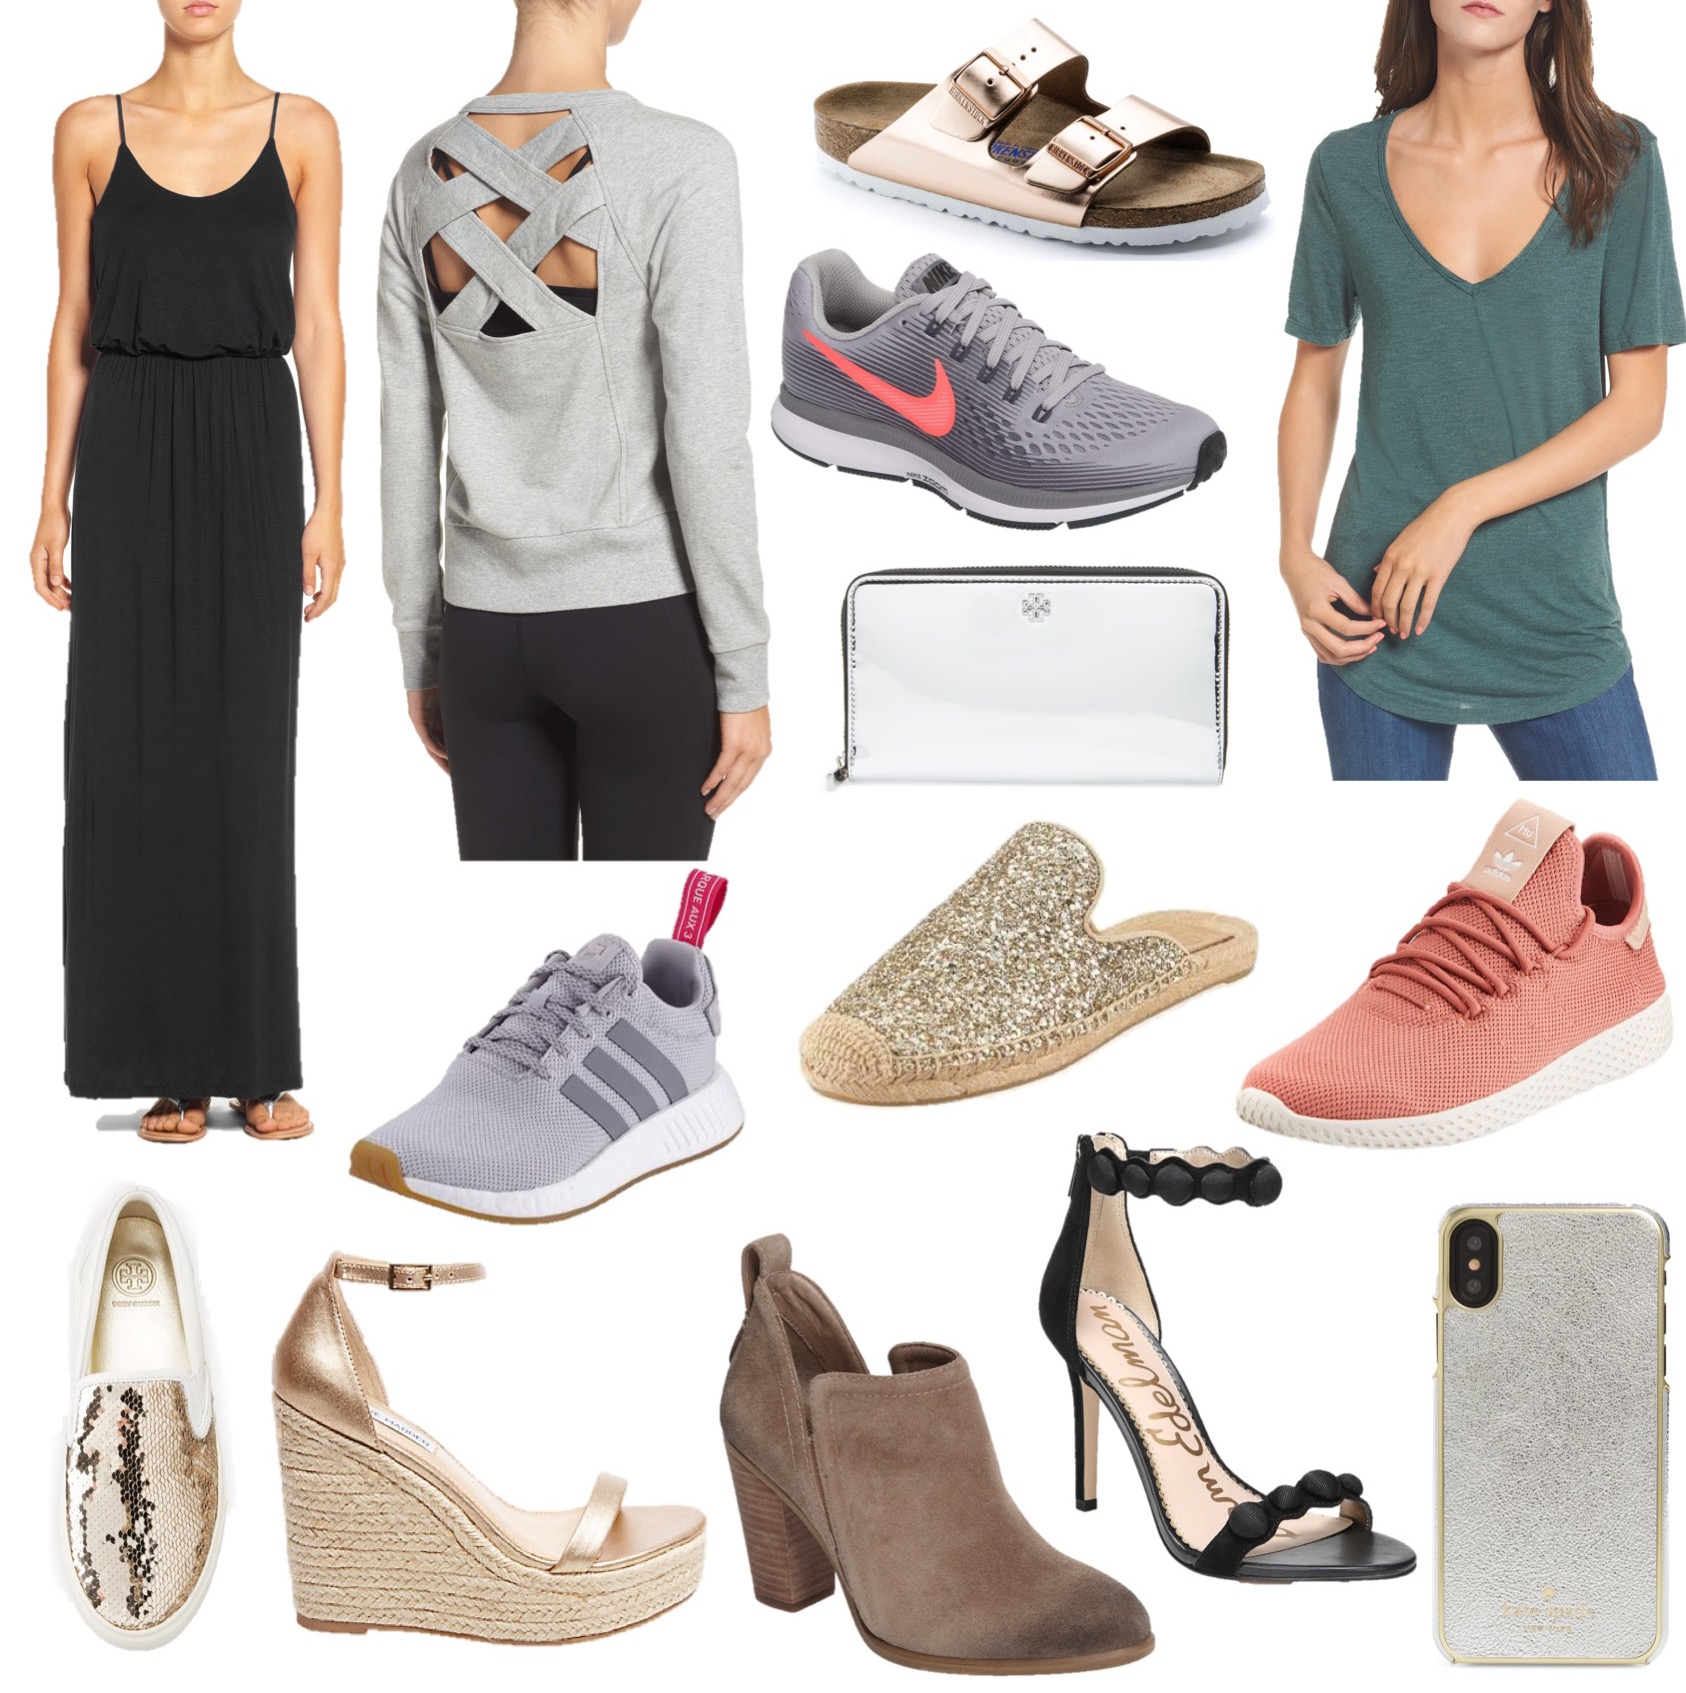 "the best attitude bba5b d553d You don t need that kind of negativity in your life."" Amen! NORDSTROM just  started a great sale with up to 40% off! I m sharing some of my favorite  finds ..."